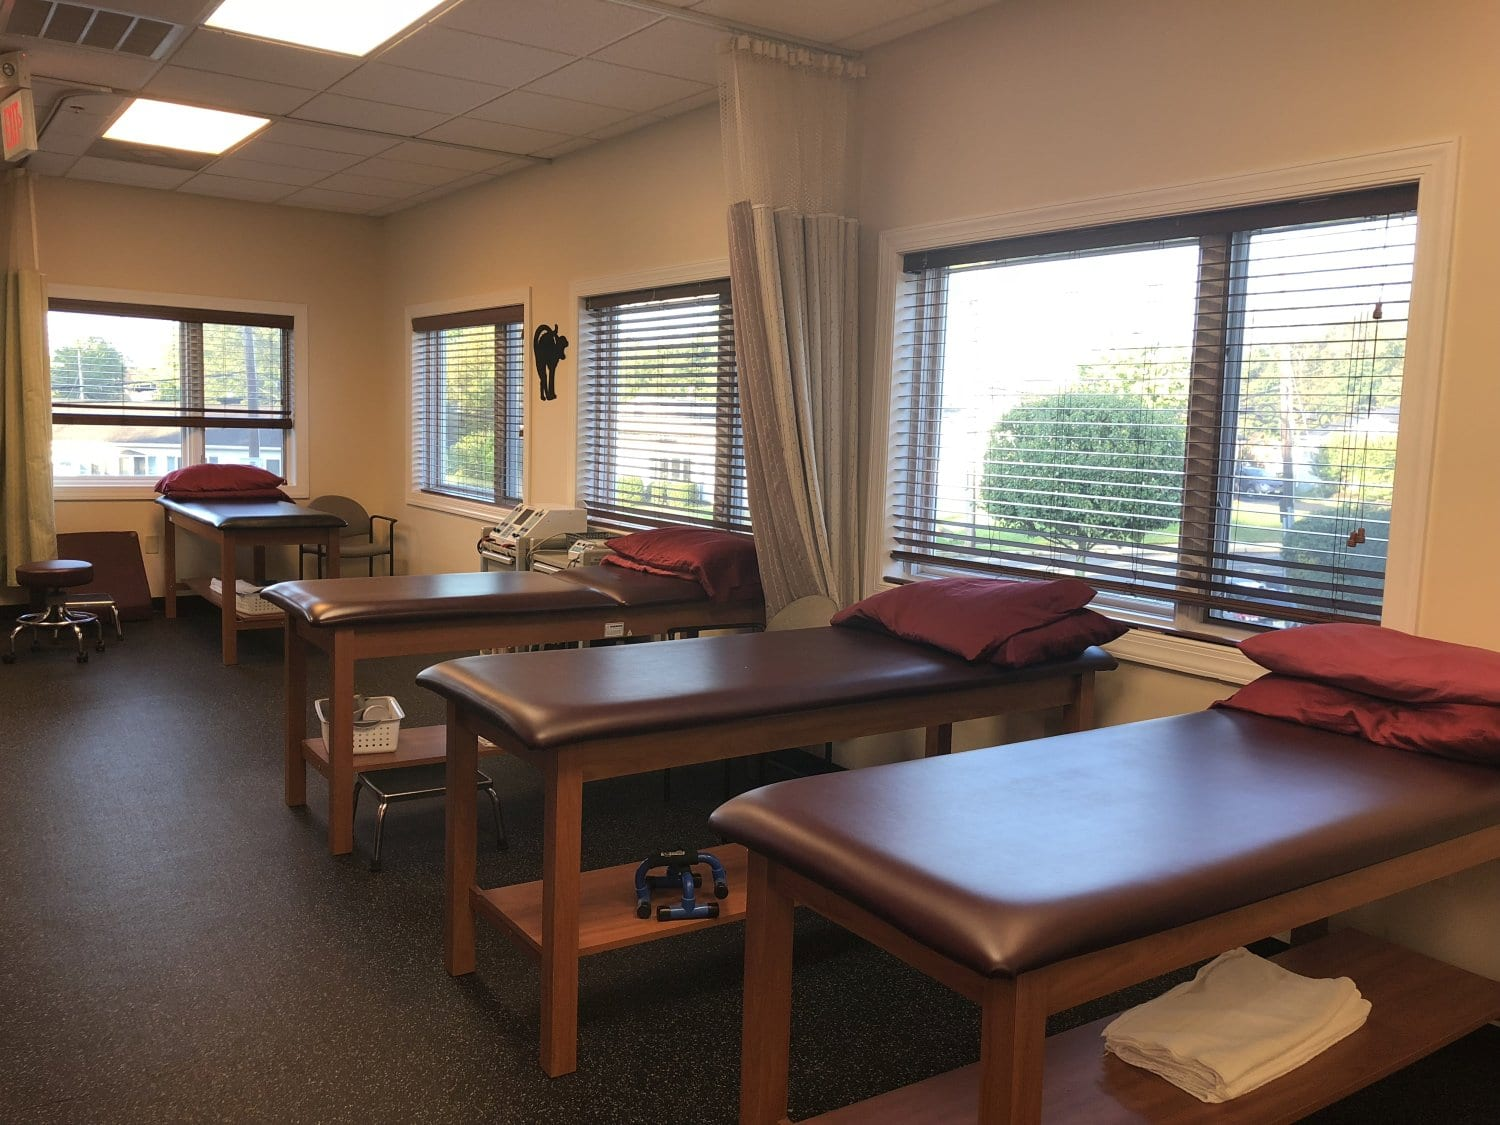 An image of four beds at our physical therapy clinic in Hazlet, New Jersey.